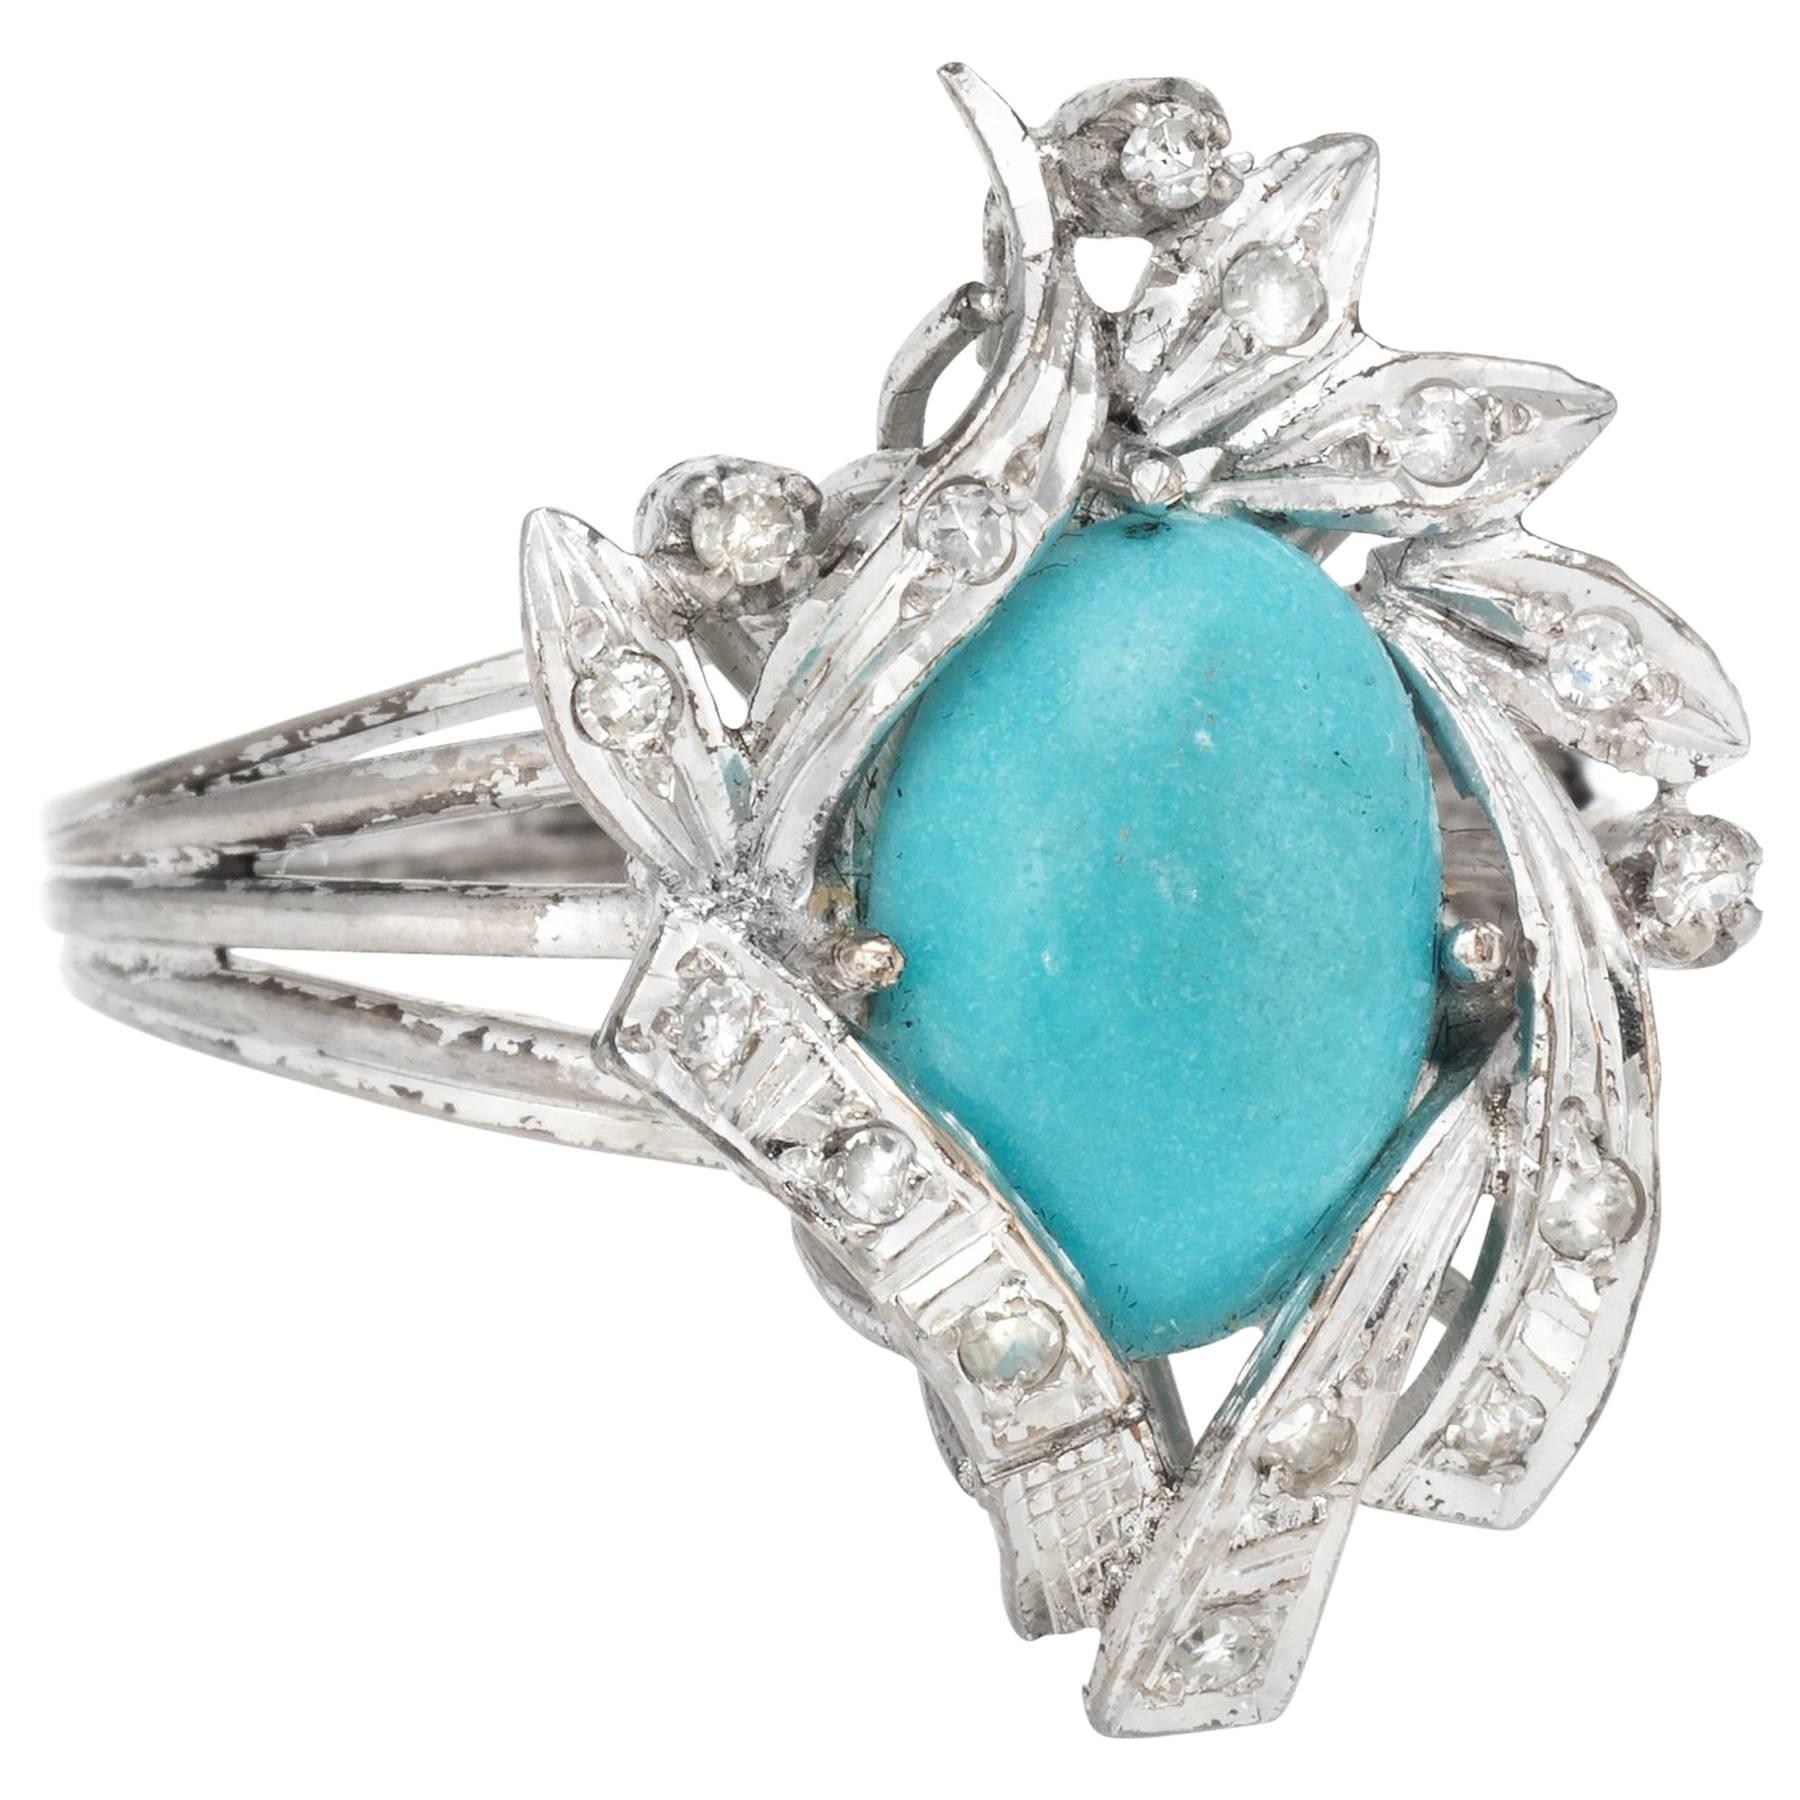 1940s turquoise diamond Palladium ring